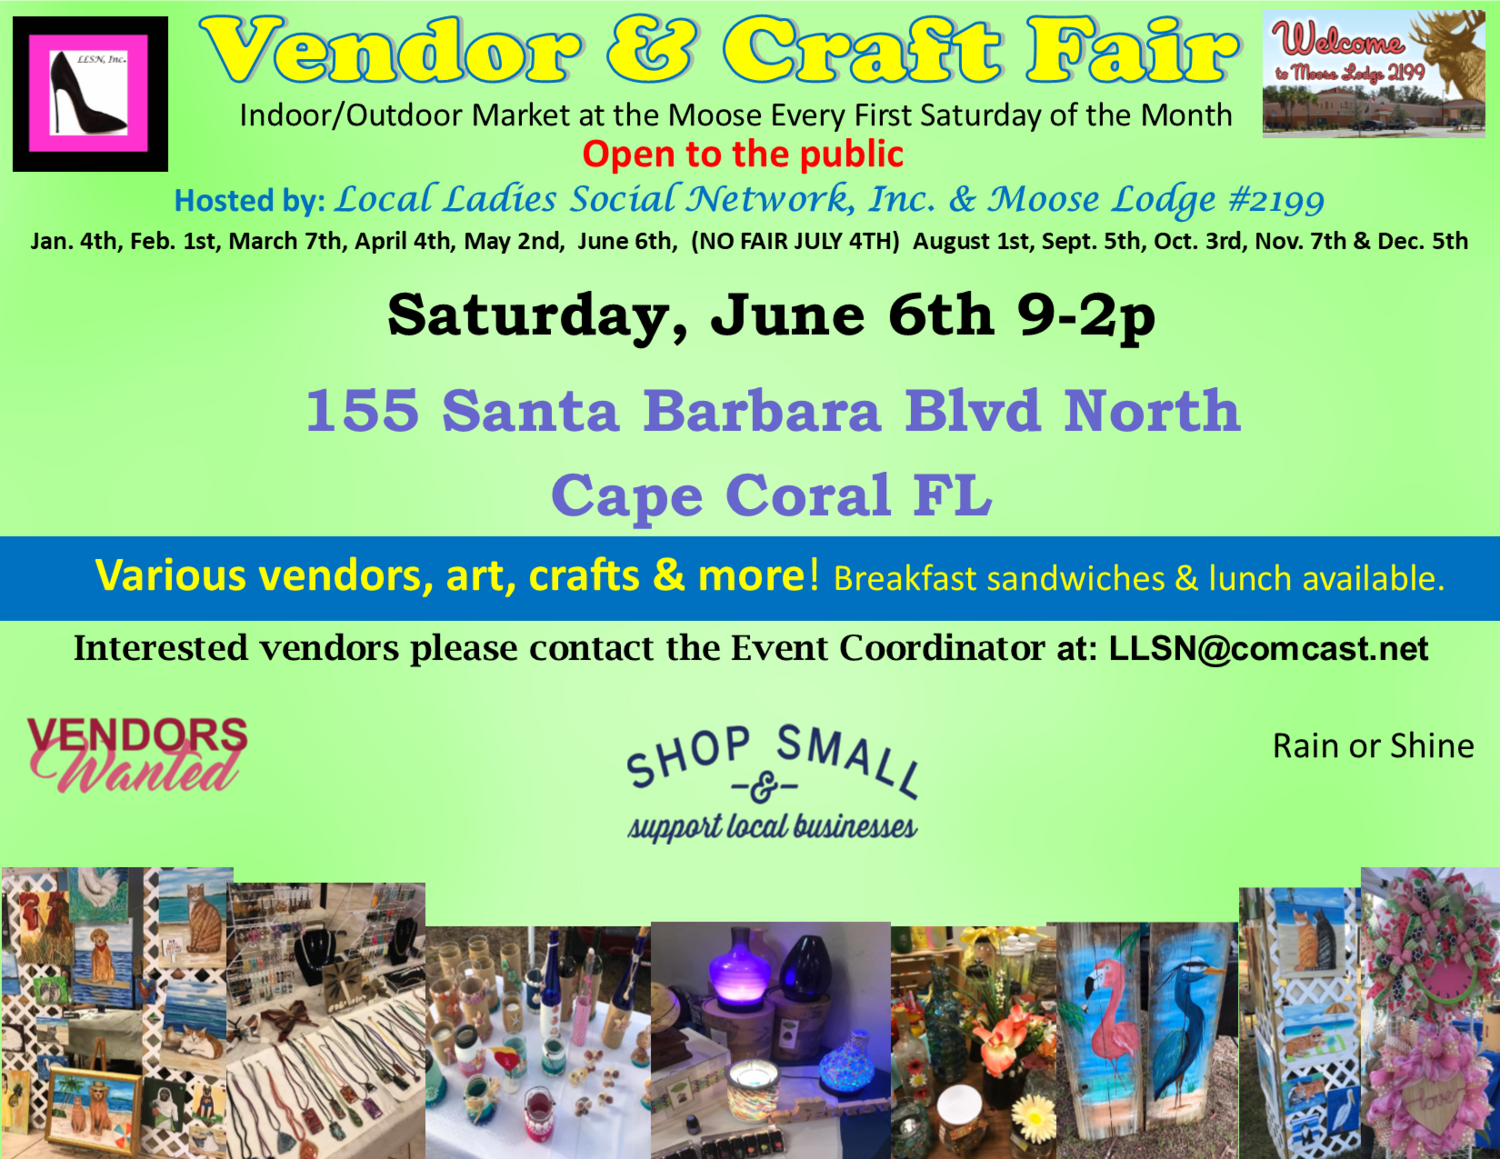 Vendor & Craft Fair- June 6th INSIDE SPOT- Includes table & chairs